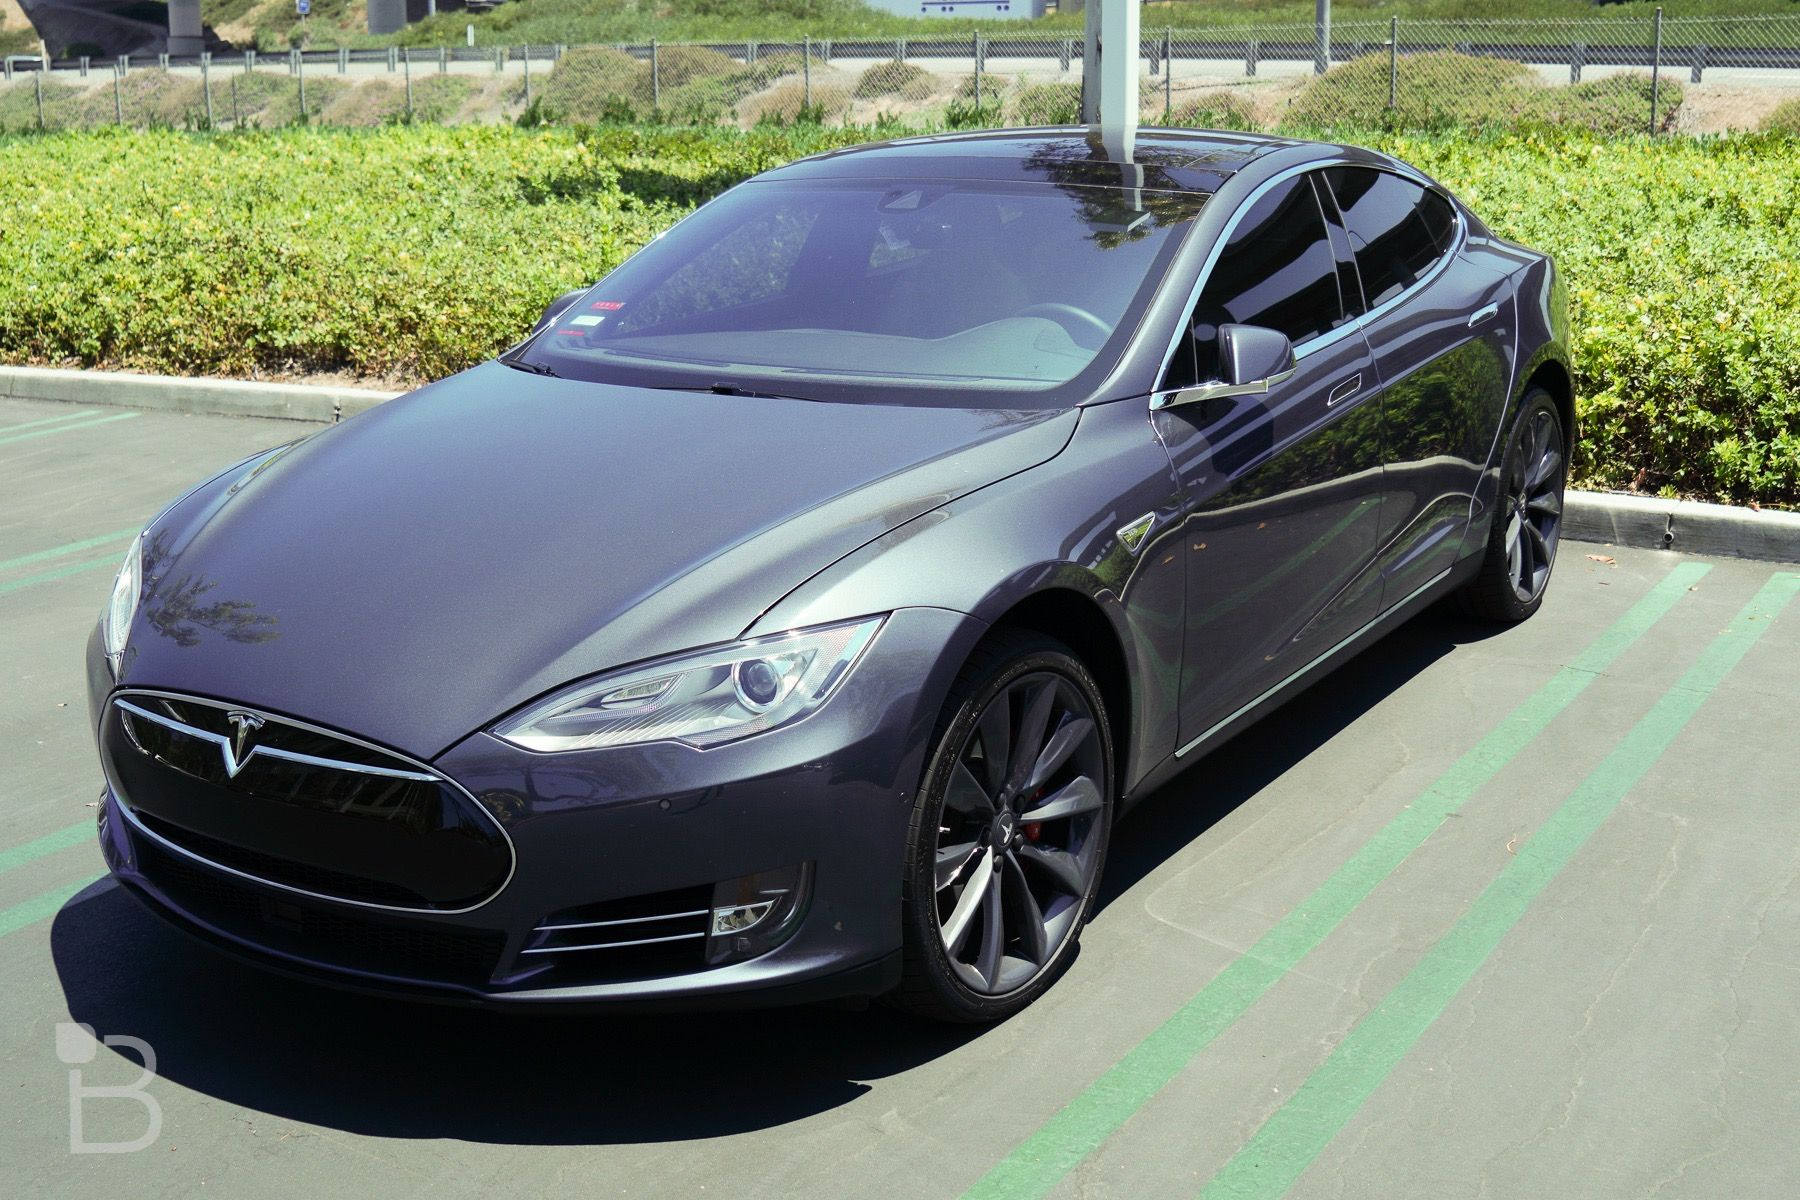 Tesla Model S P100d Breaks Another Record With A 0 60 In 2 28 Seconds Tesla Model S Tesla Sports Car Tesla Model